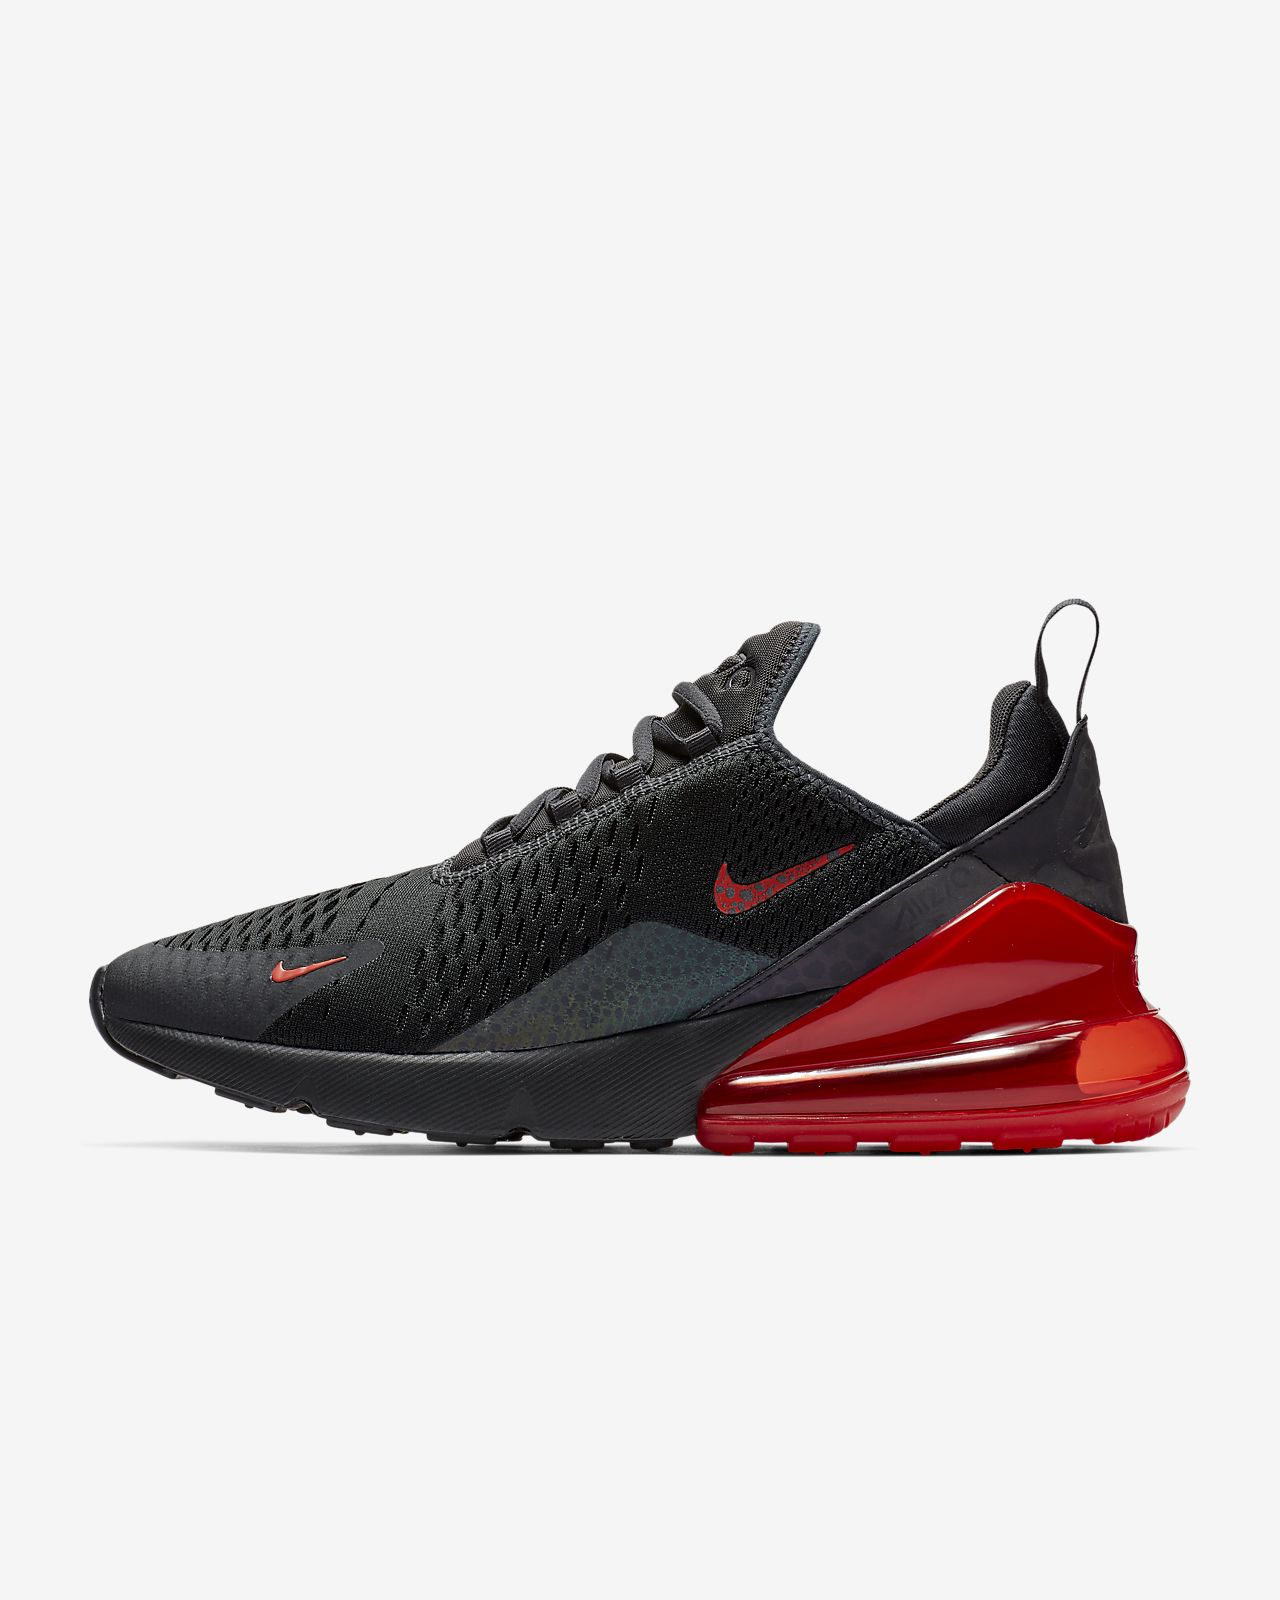 Air Chaussure Nike Se Reflective Max Homme 270 Pour O08nwPk